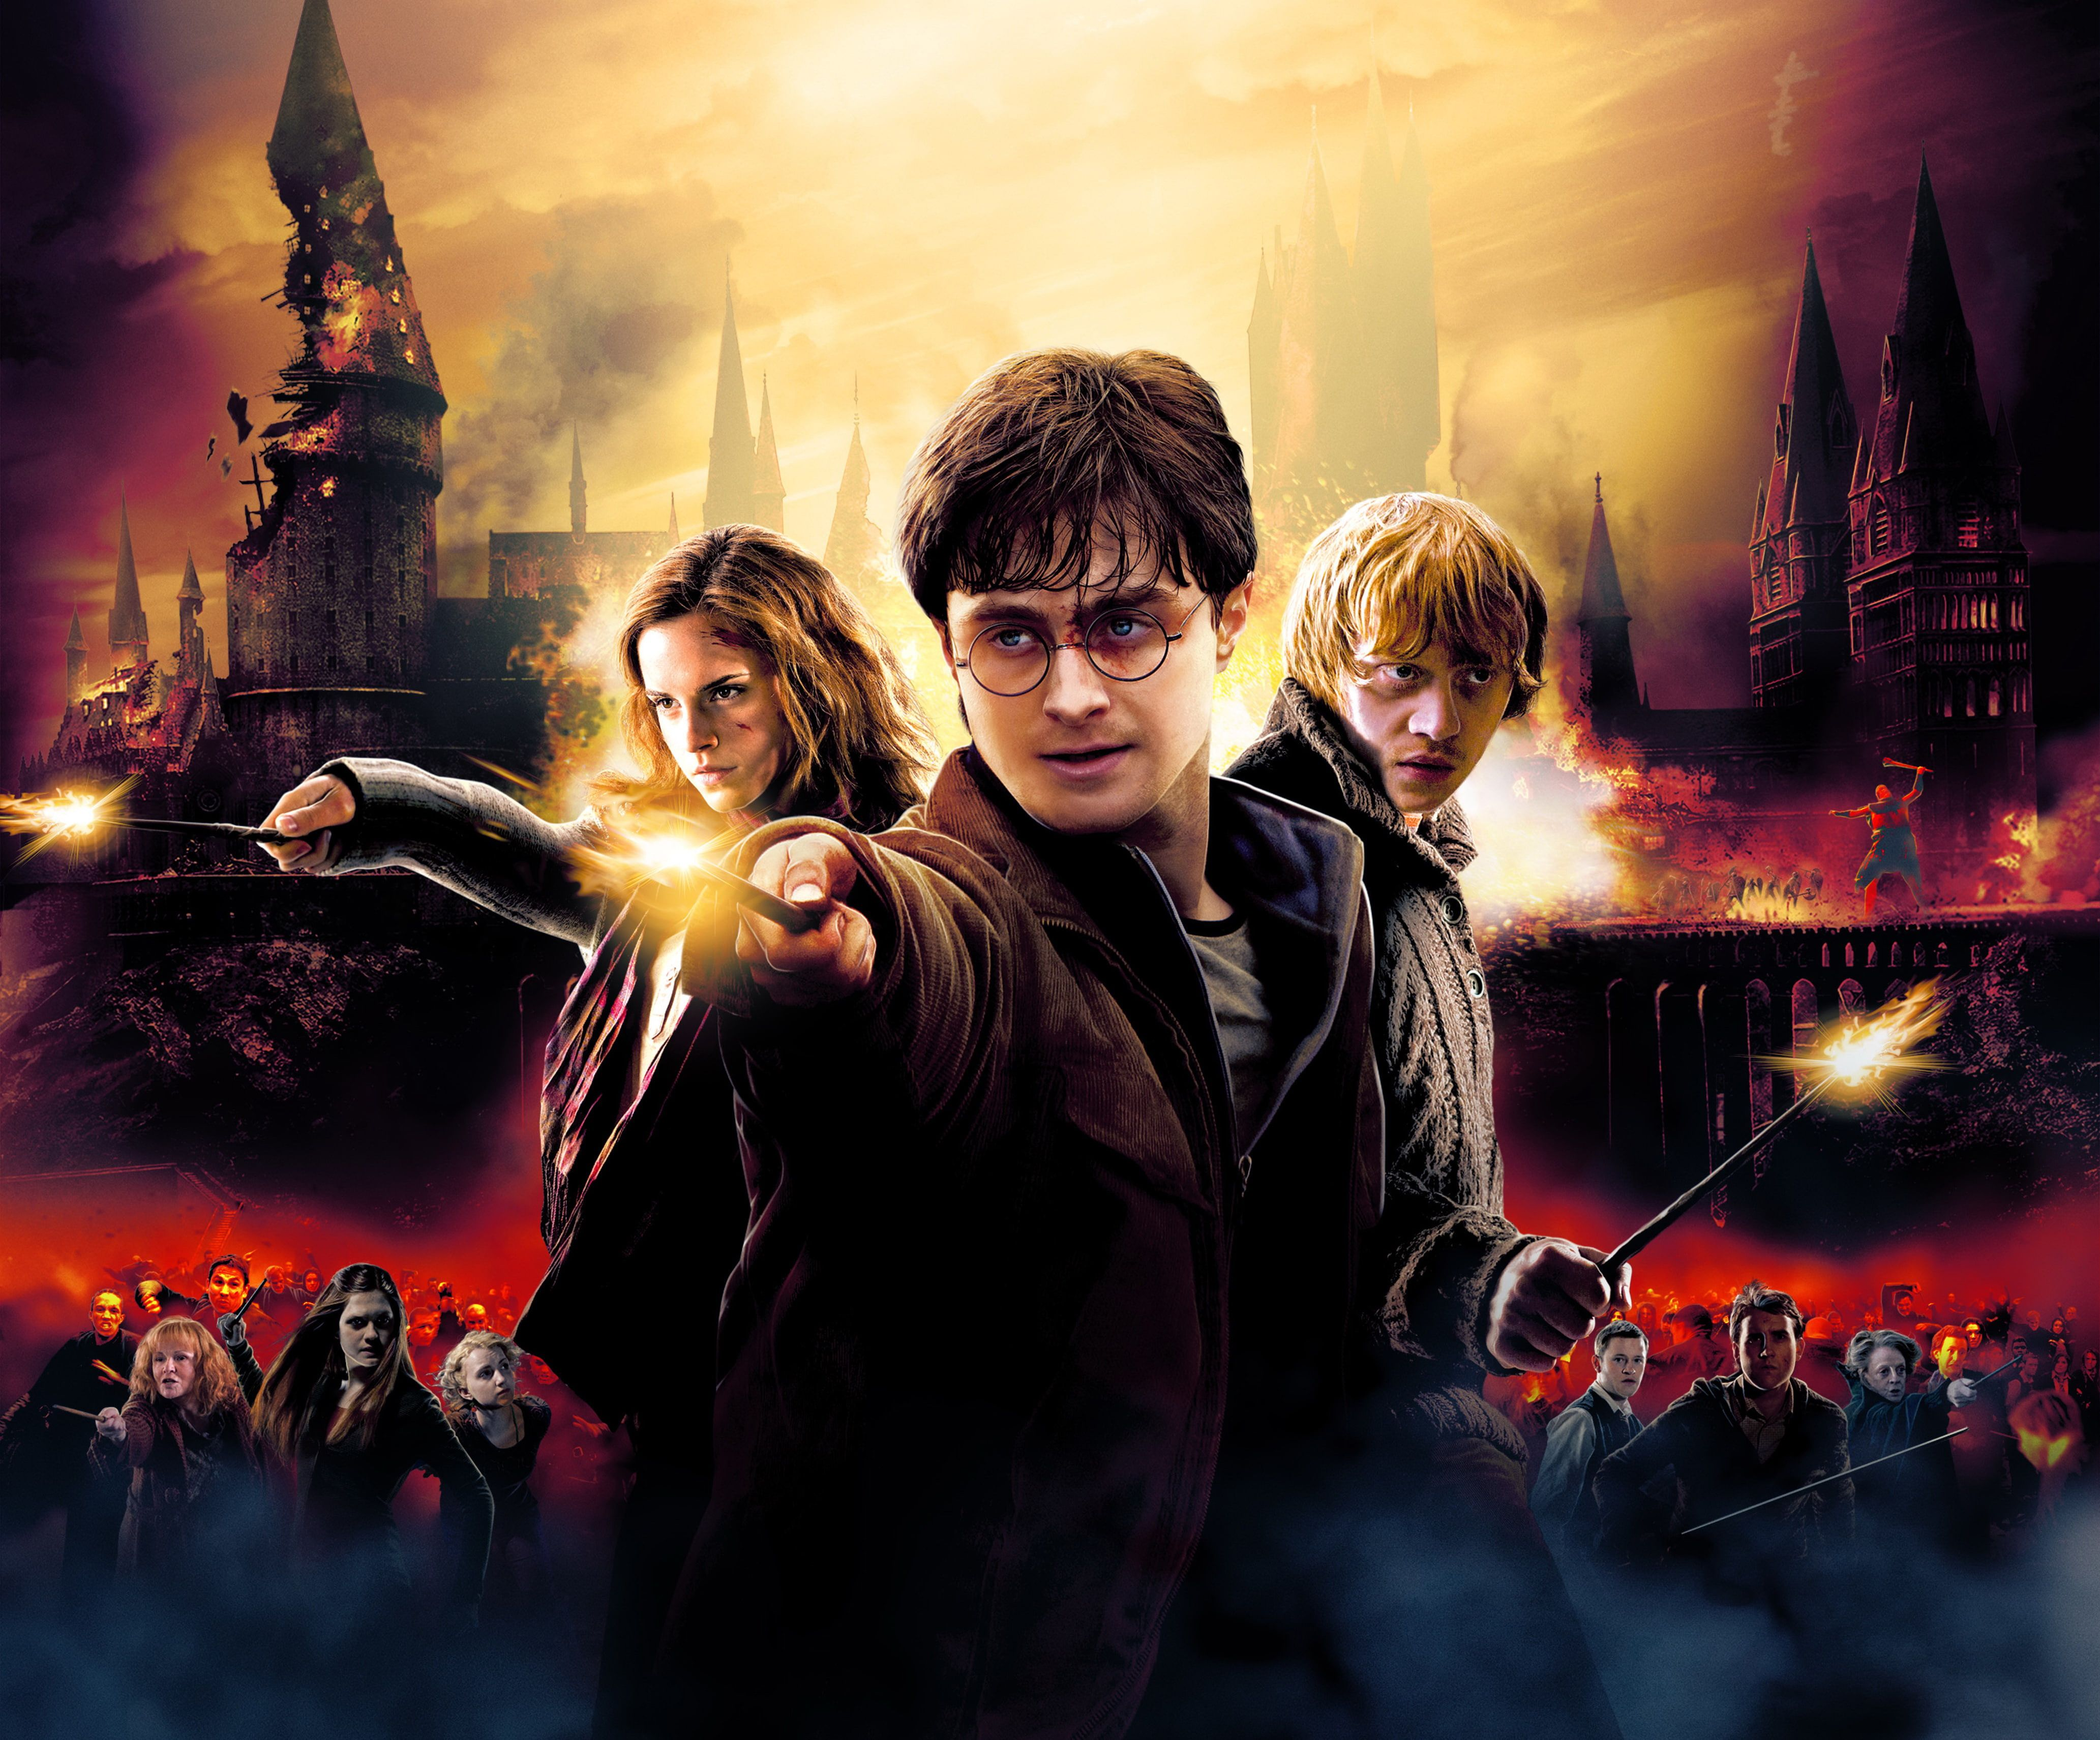 Harry Potter And The Deathly Hallows Emma Watson Ron Weasley Hermione Granger Rupert Harry Potter Illustration Deathly Hallows Wallpaper Beautiful Backgrounds